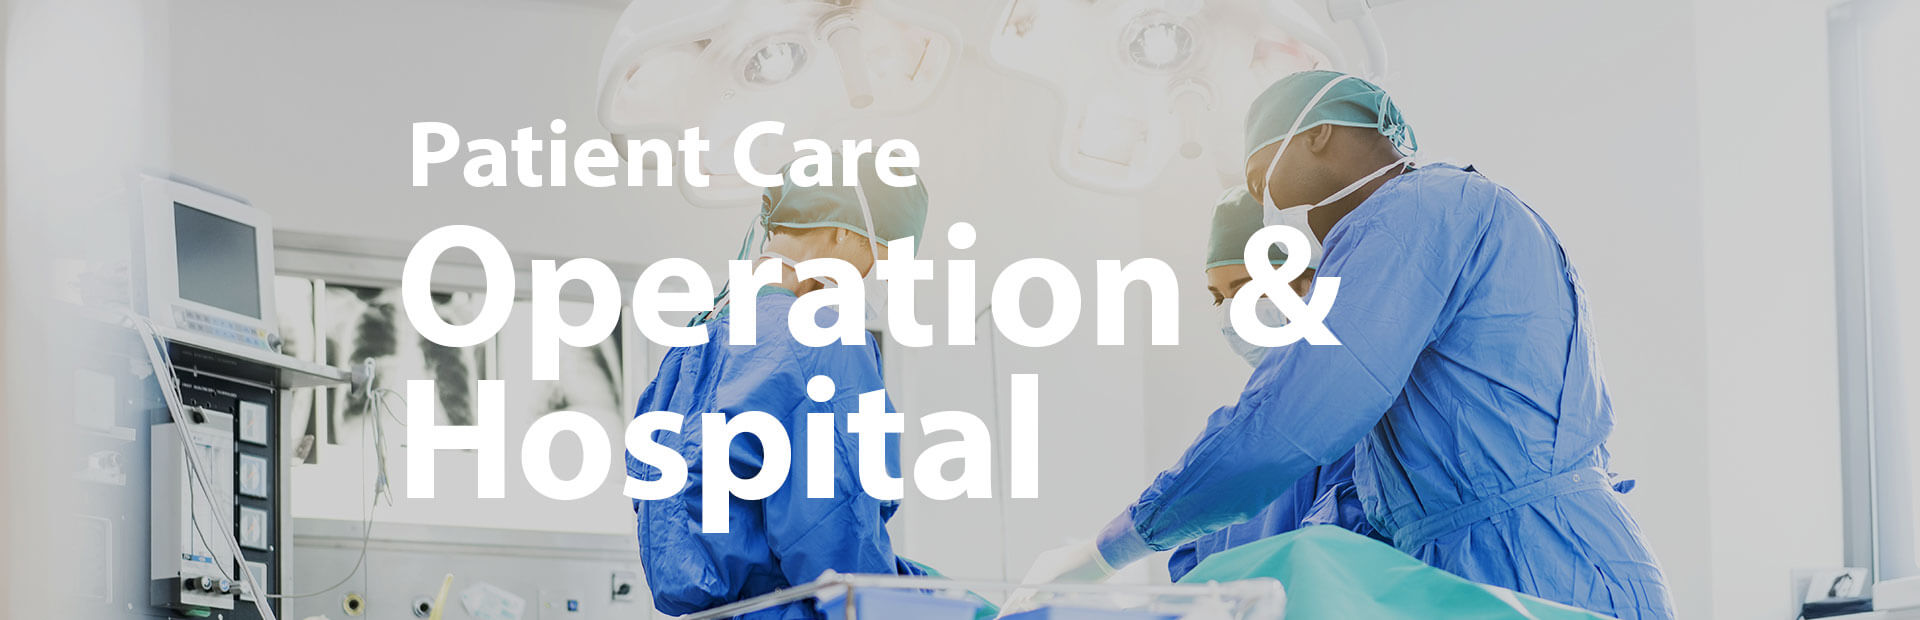 Oxygen production for hospitals and operating theatres